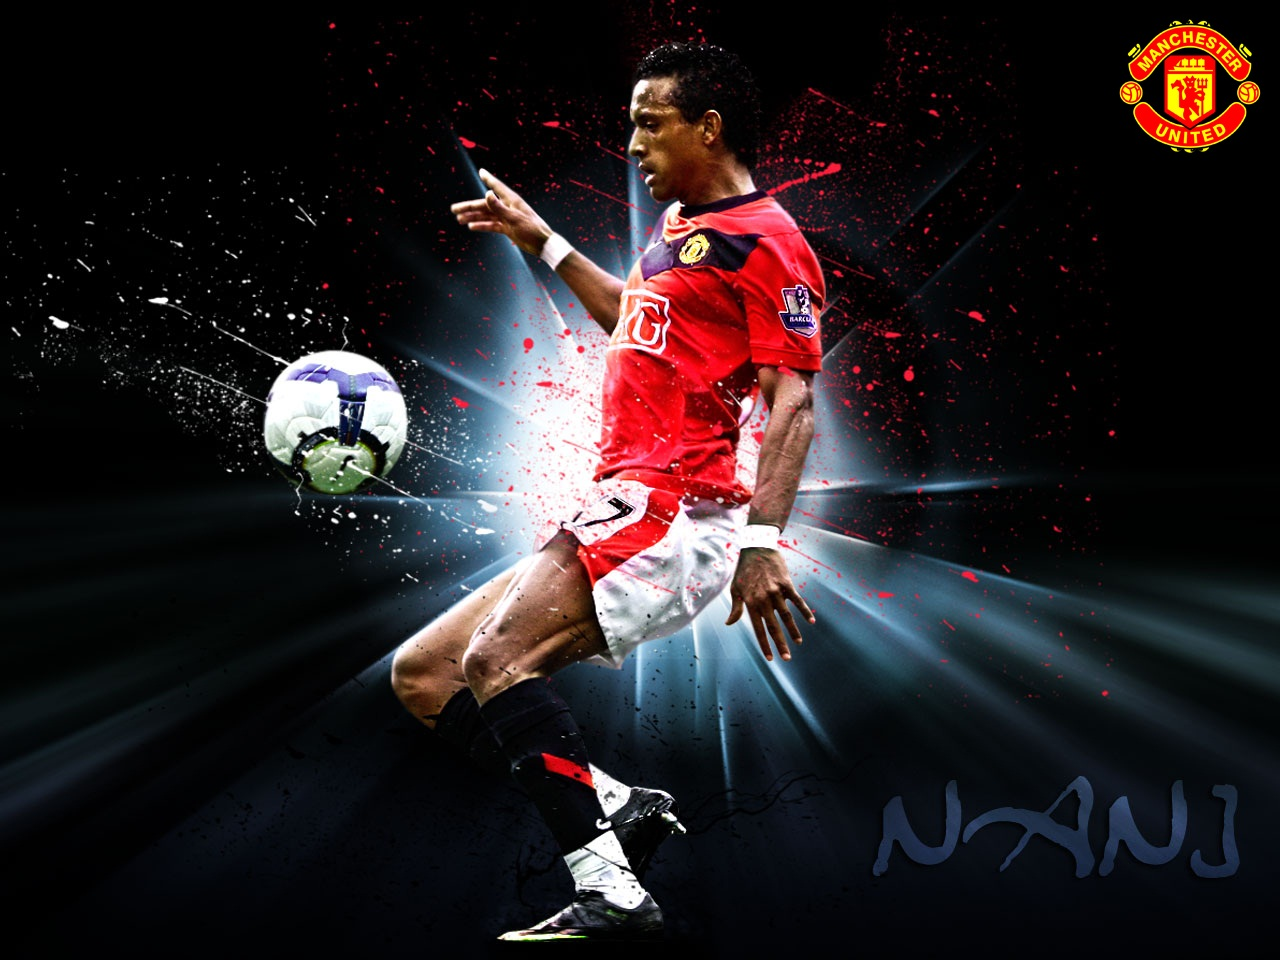 Nani new hd wallpaper latest hd wallpapers for The latest wallpaper